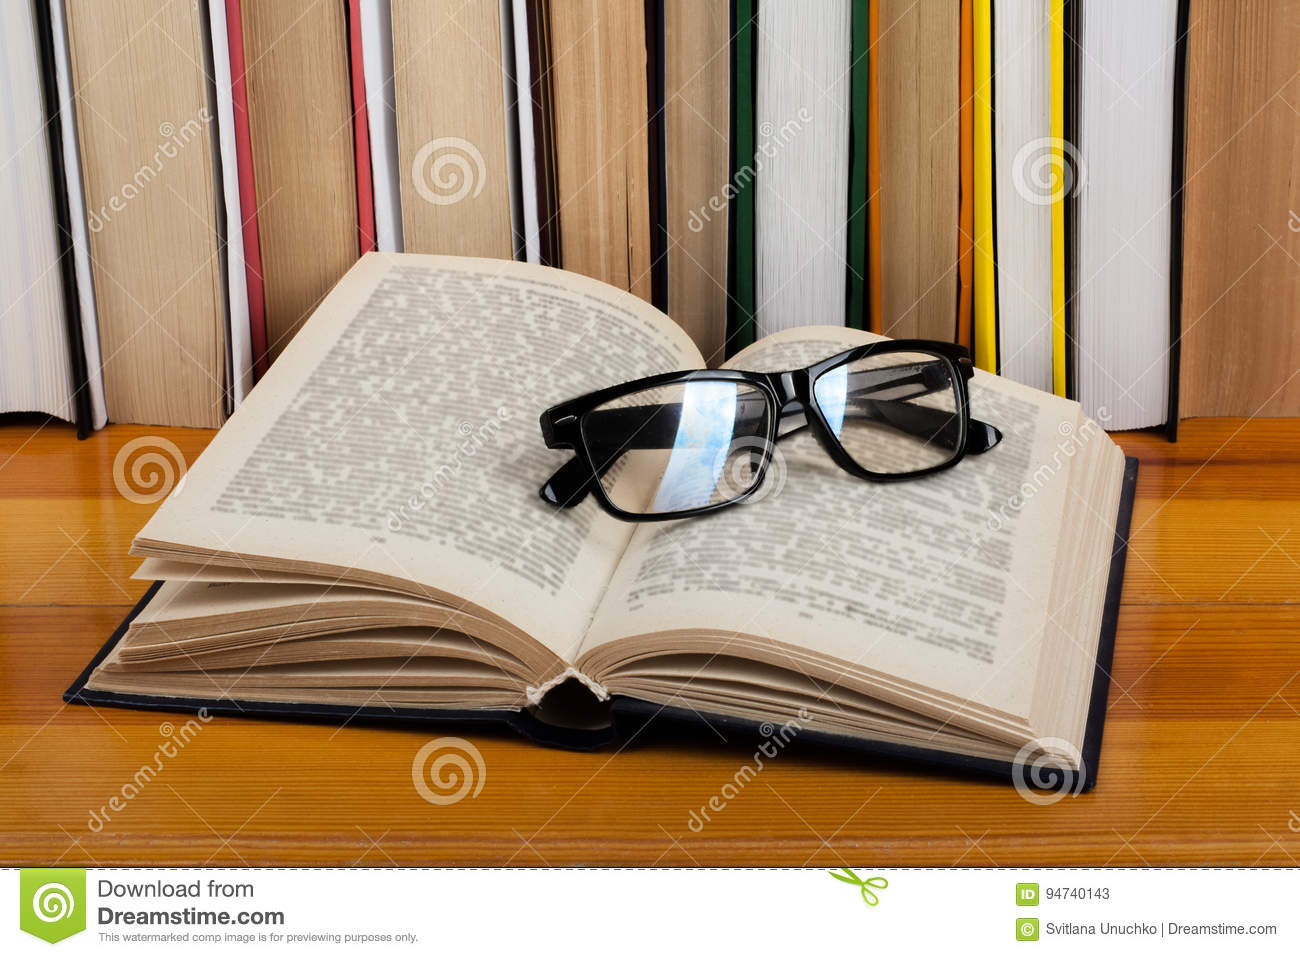 Open Book, Glasses Hardback Colorful Books On Wooden Table